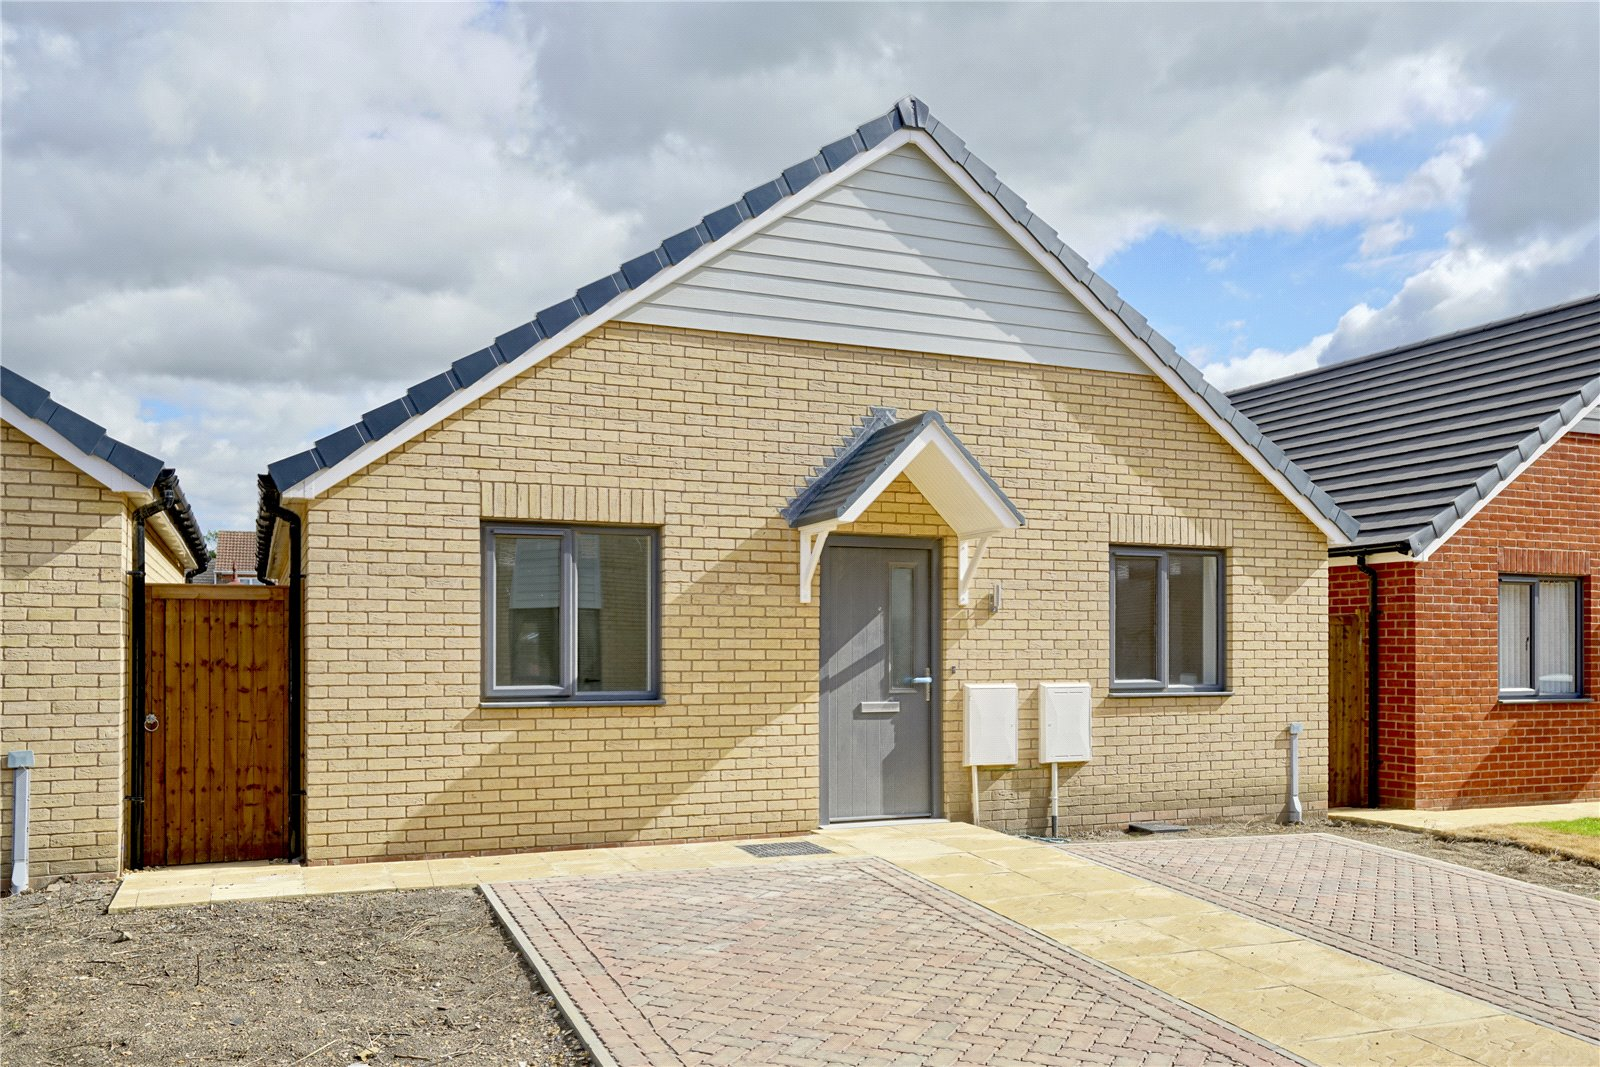 2 bed bungalow for sale in Whittlesey, PE7 1RU, PE7